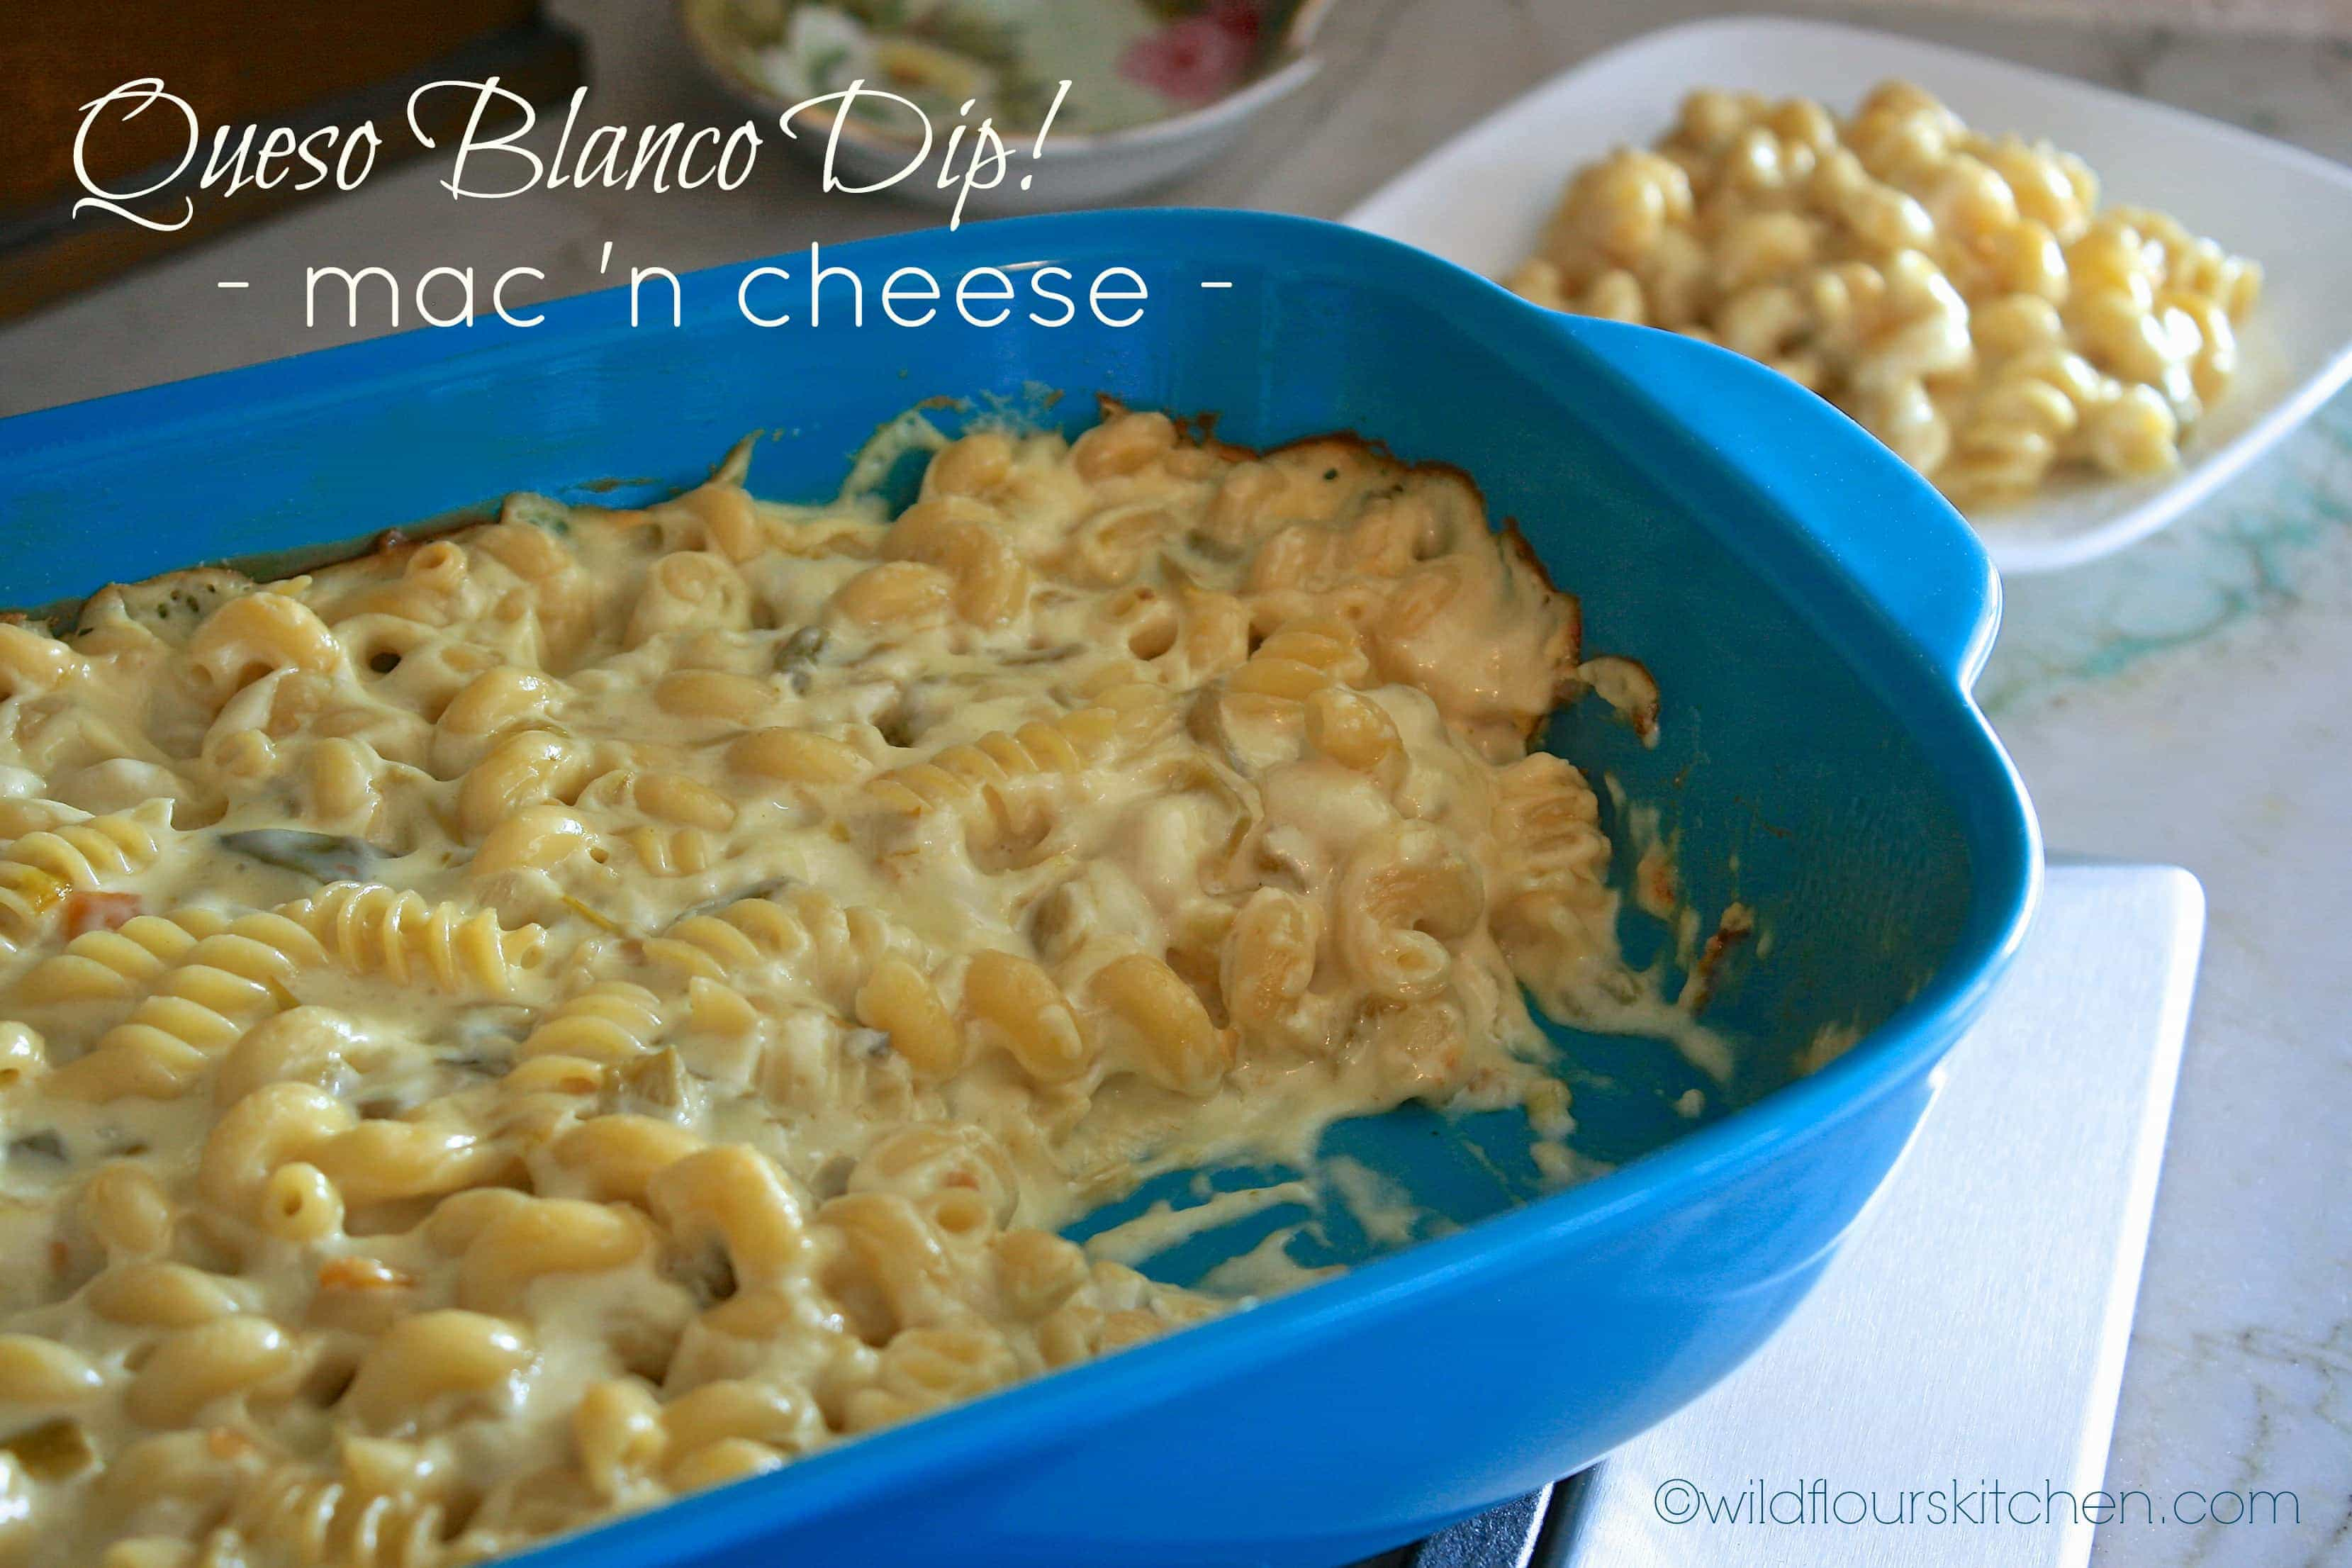 Queso Blanco Dip Mac 'n Cheese! - Wildflour's Cottage Kitchen